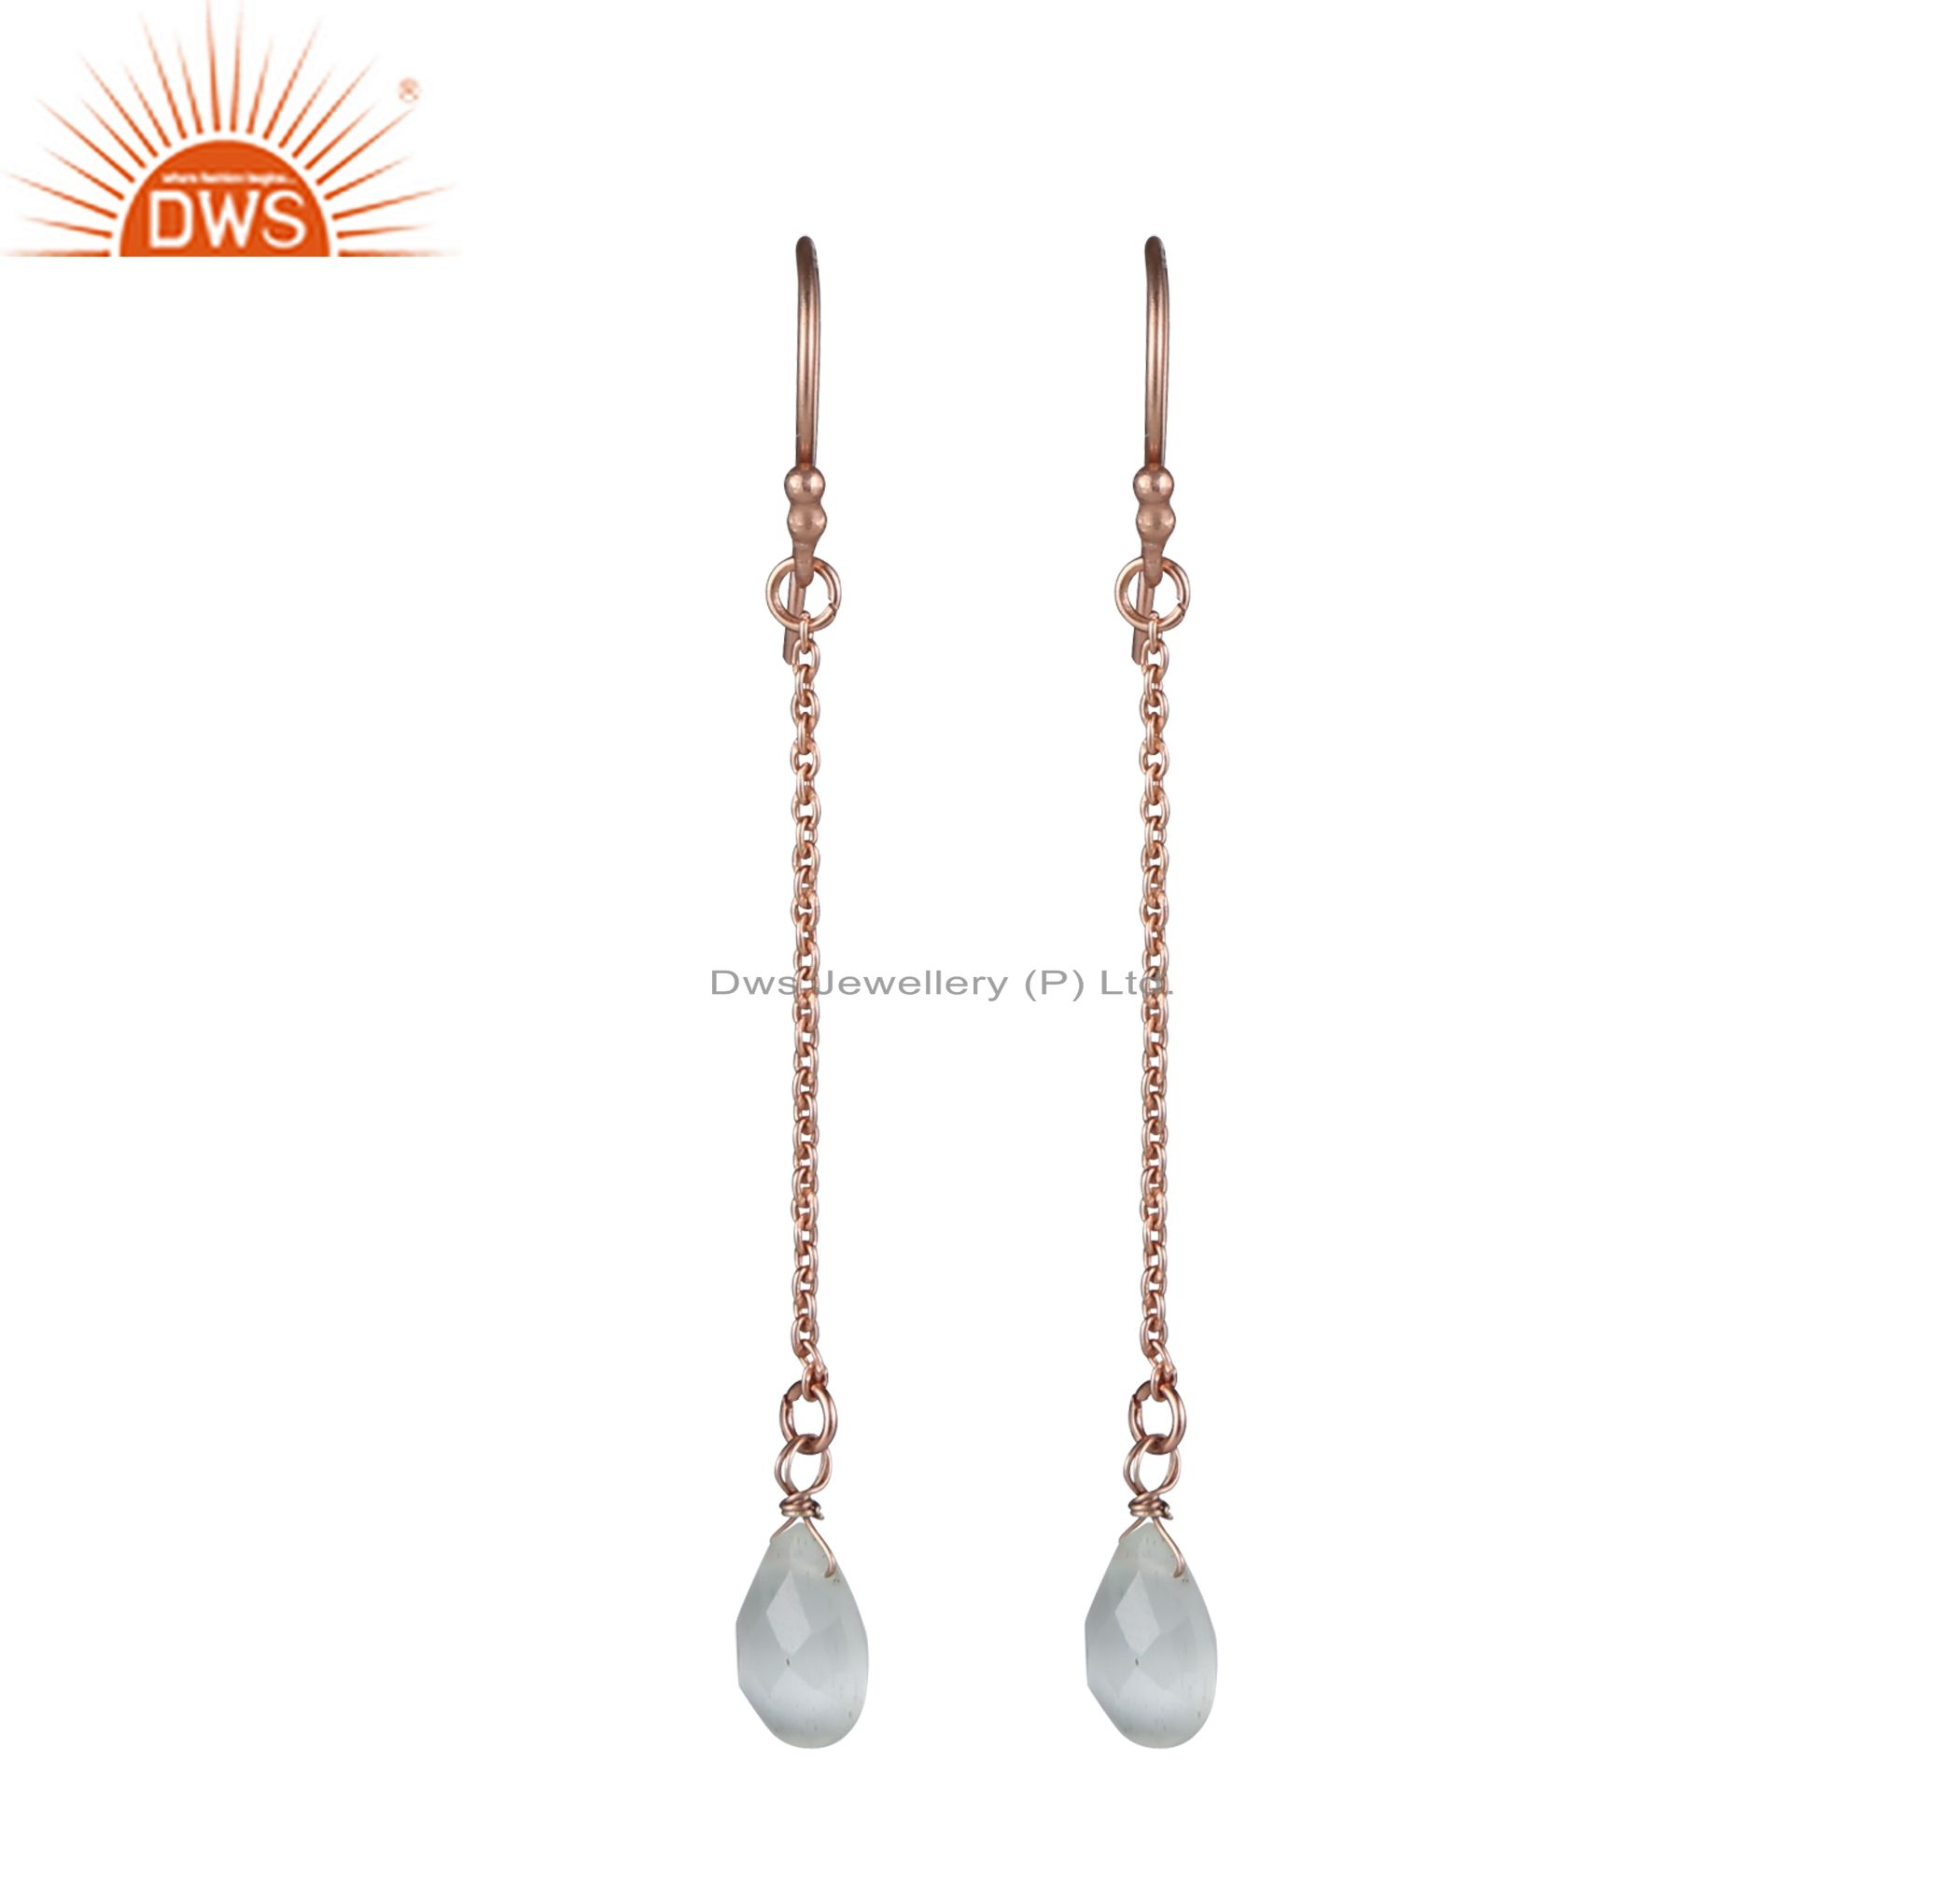 18K Rose Gold Plated Sterling Silver White Moonstone Chain Drop Earrings